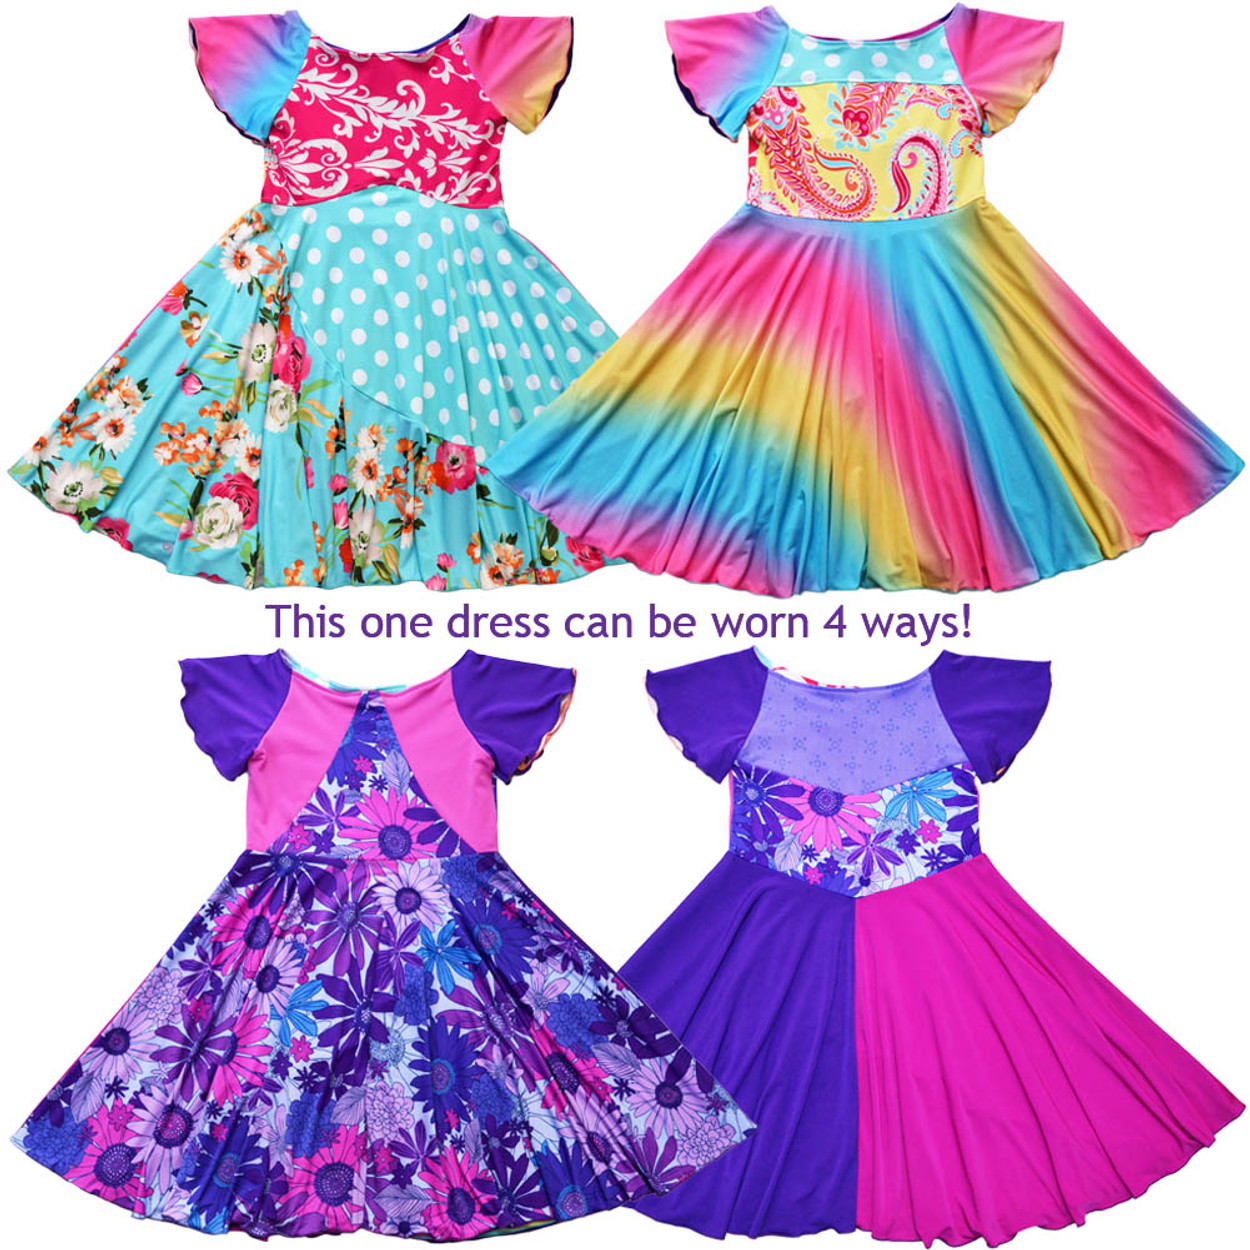 e51932964 Twirly Girl Young Girls Swirly Full Circle Skirt 4 Way Reversible ...